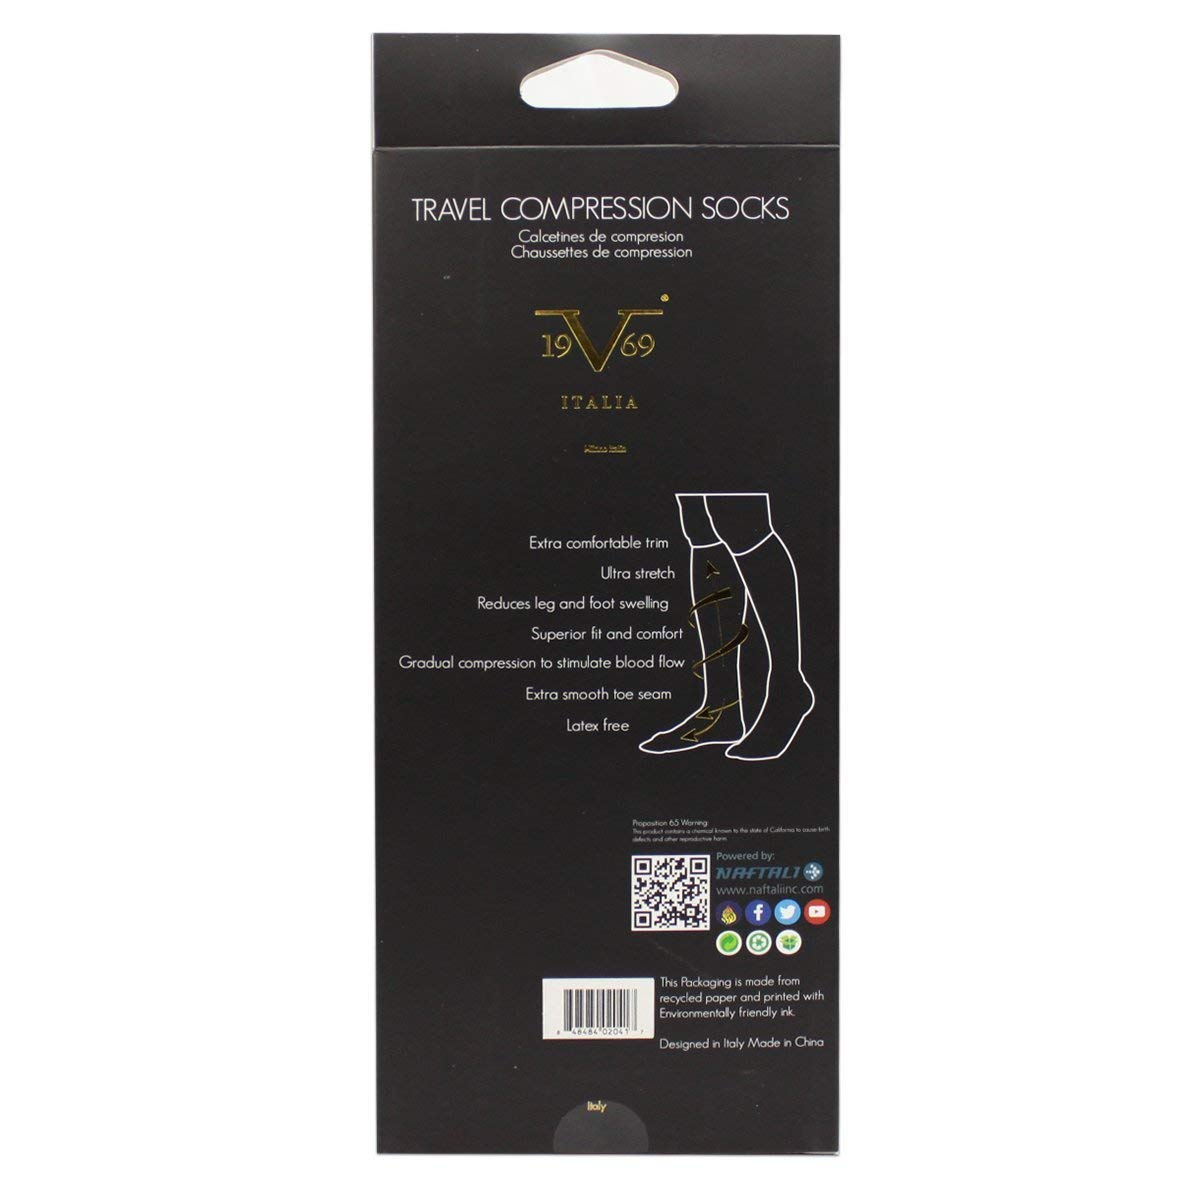 Amazon.com: Compression Socks - V19.69 Italia - Alessandro Versace - Best Socks for Travel, Running, Athletes, Pregnancy, Medical, Varicose Veins, ...